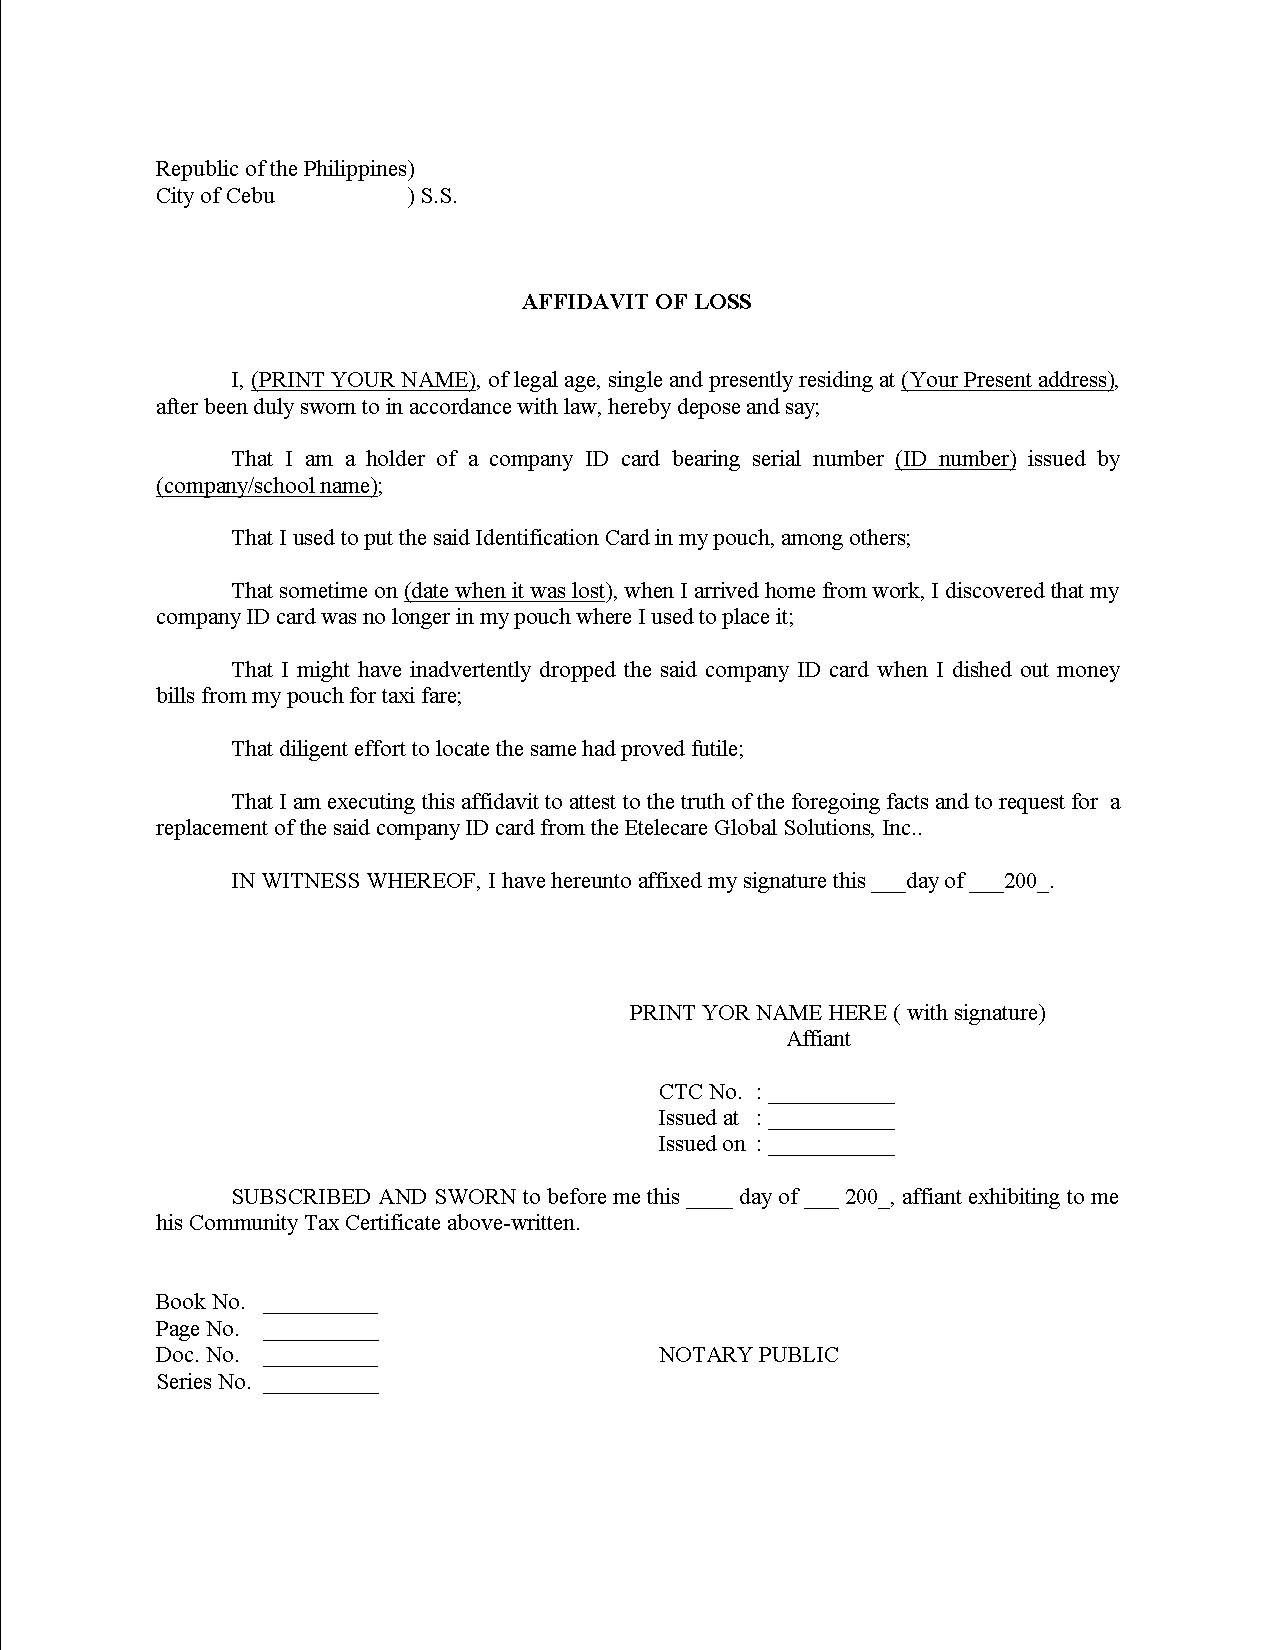 February 2015 – Word Affidavit Template